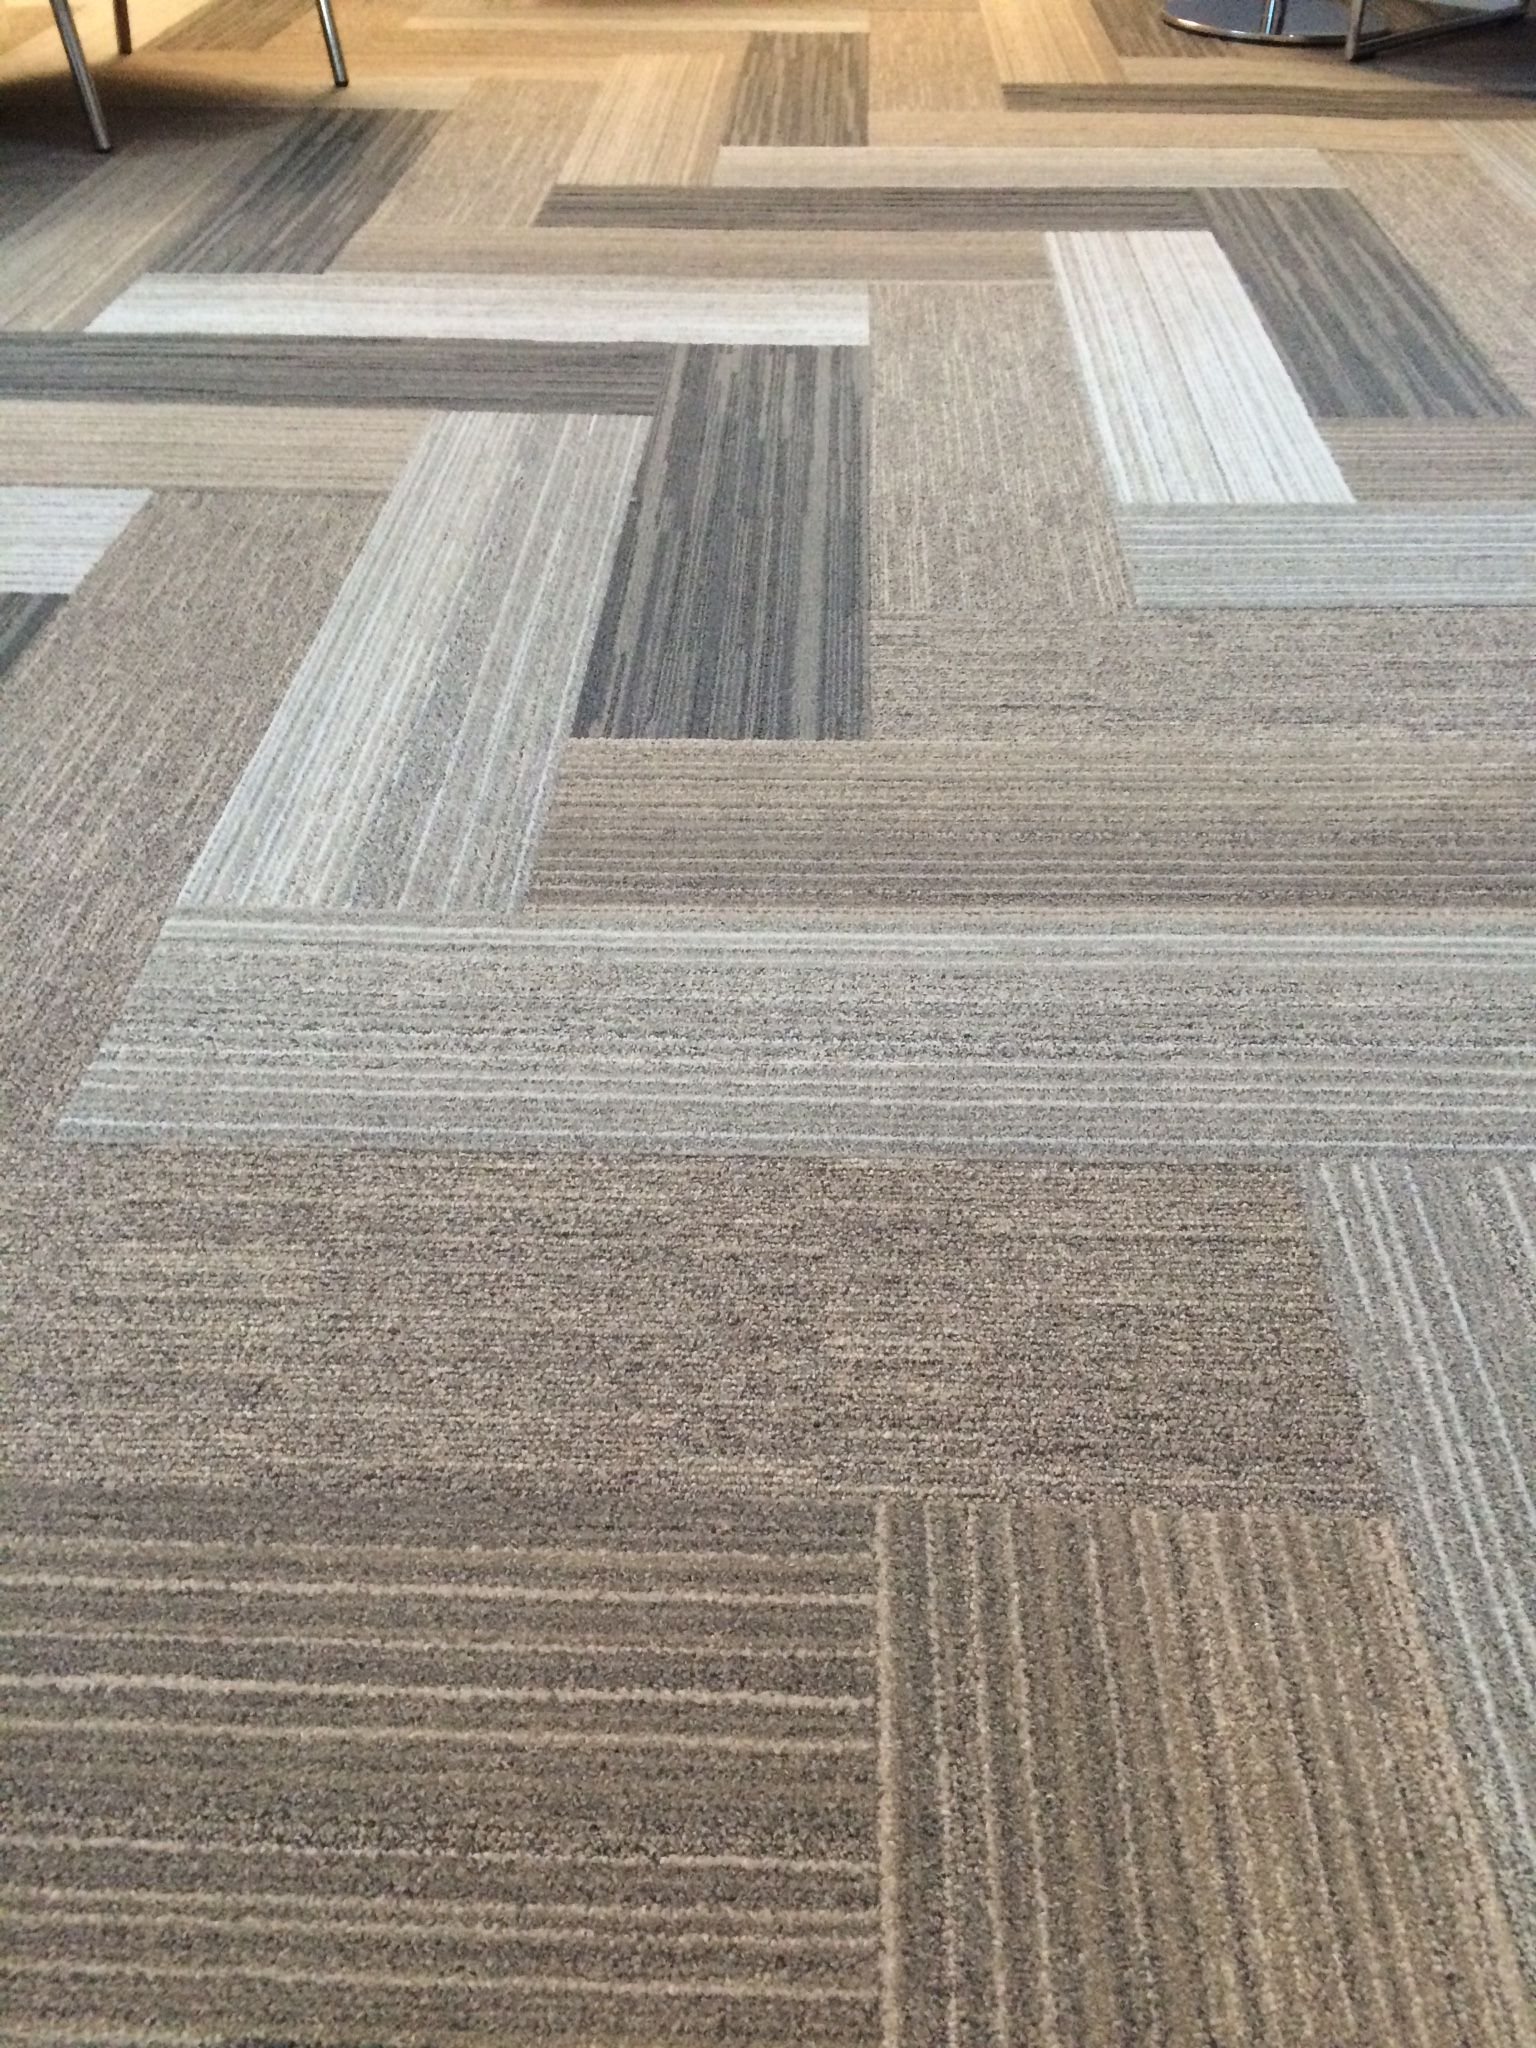 Near & Far carpet tile planks by Interface. Installation